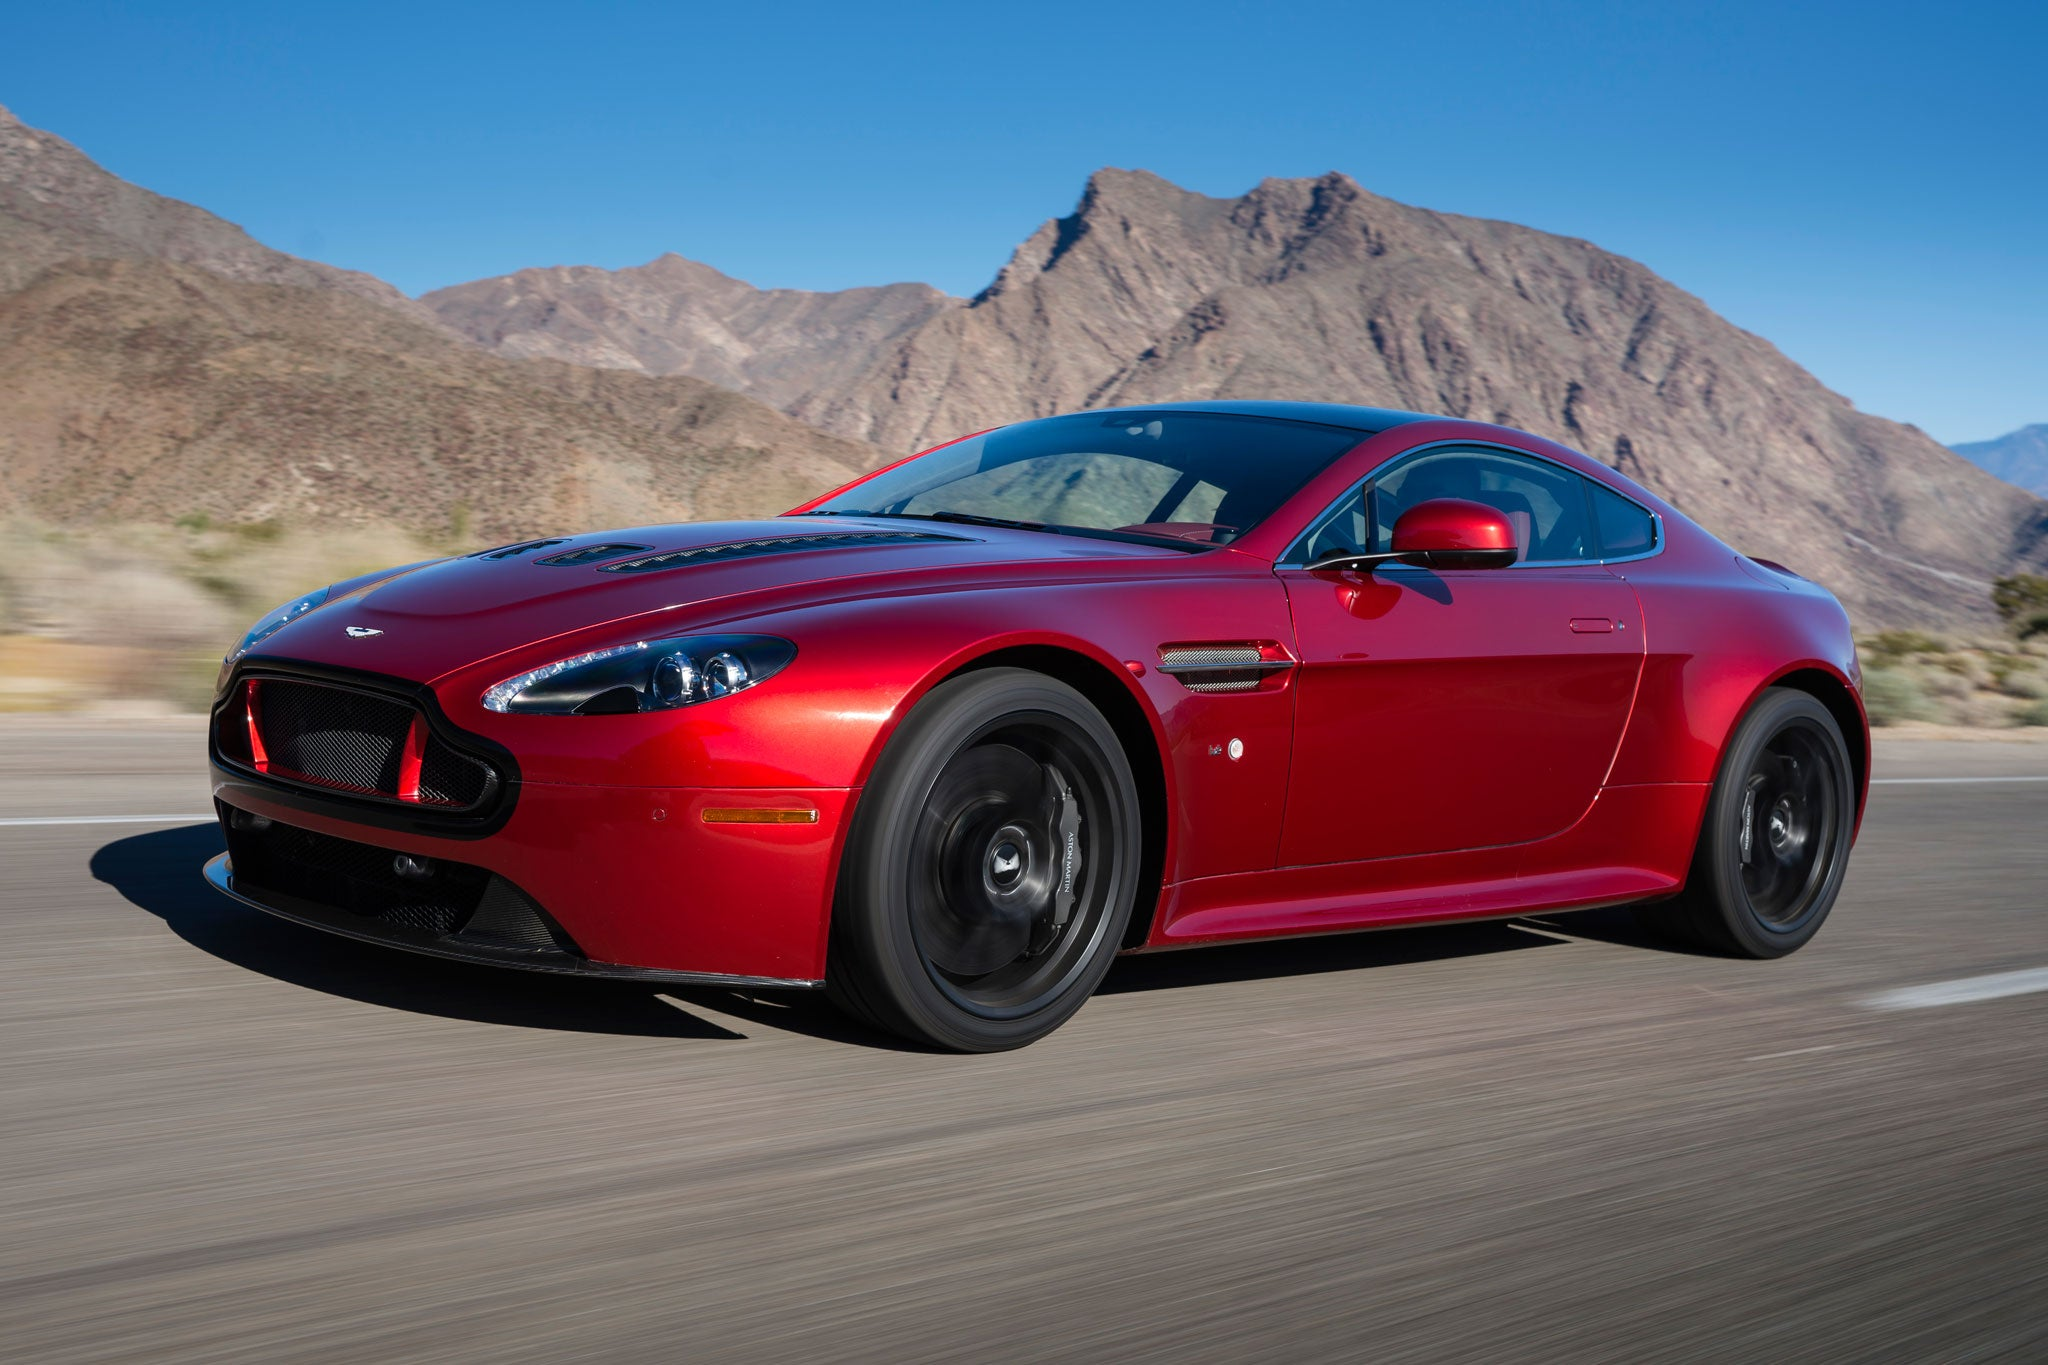 aston martin v12 vantage s, motoring review: does the car feel as